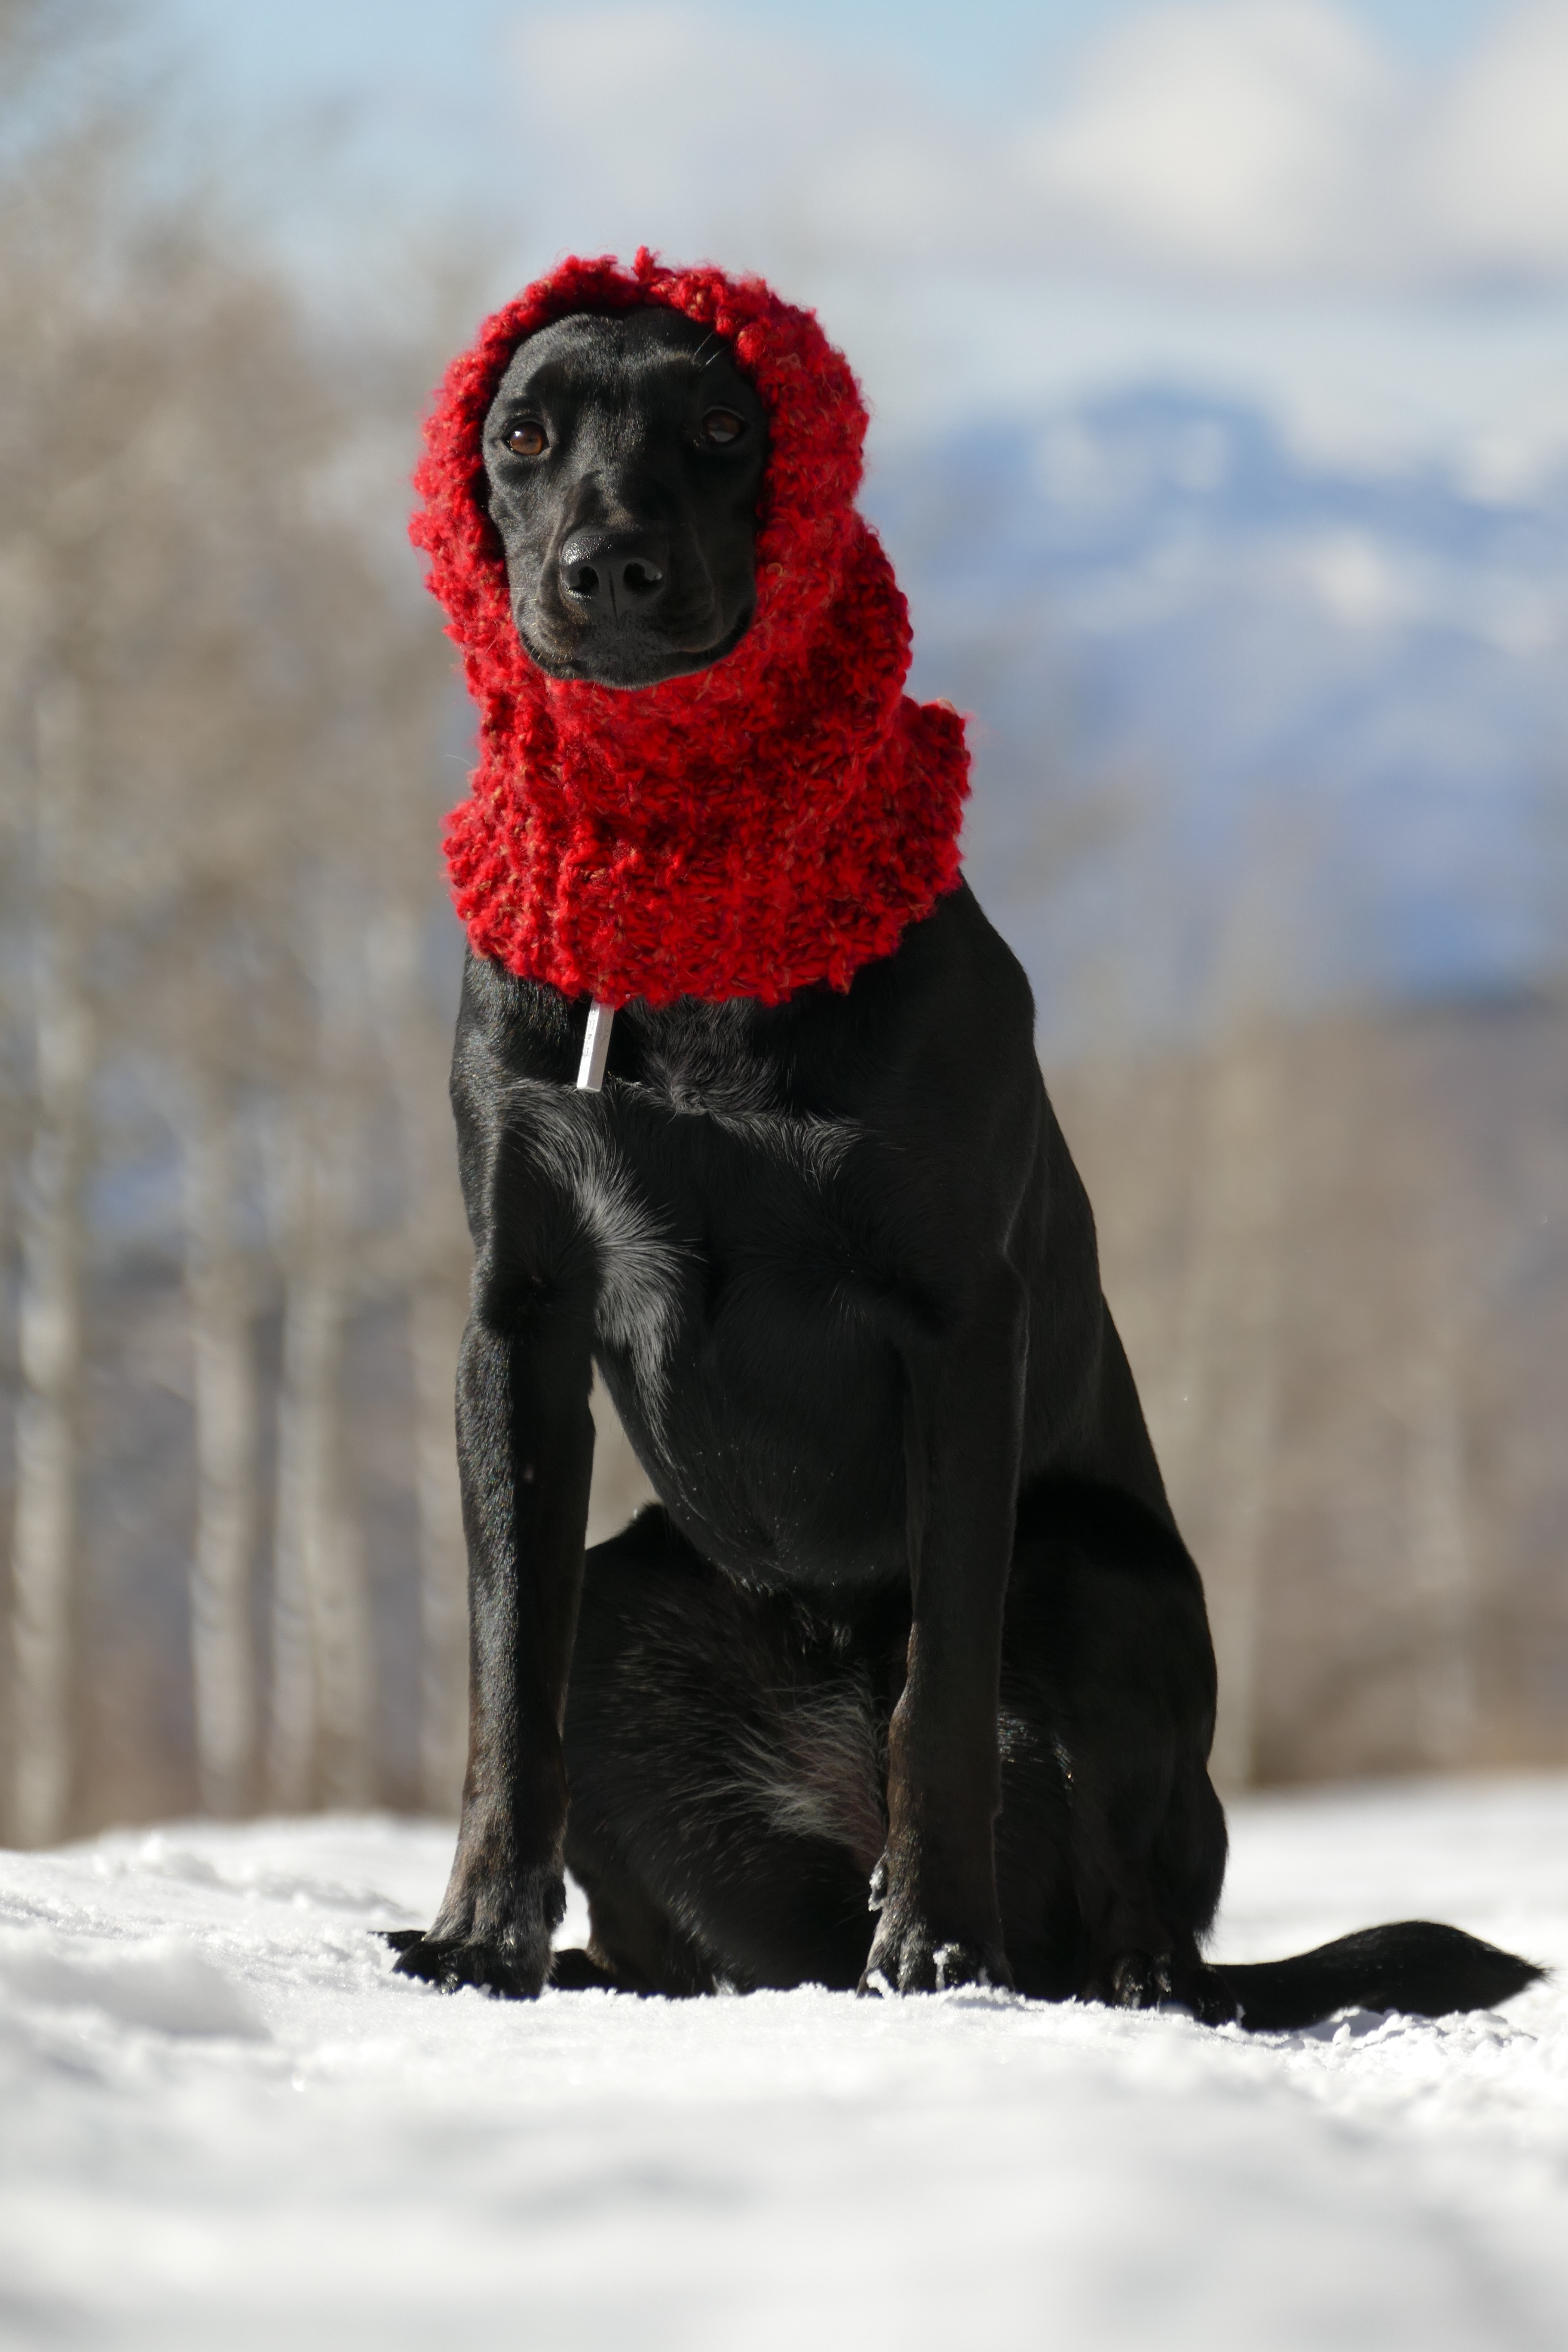 black dog sitting on snow wearing beanie